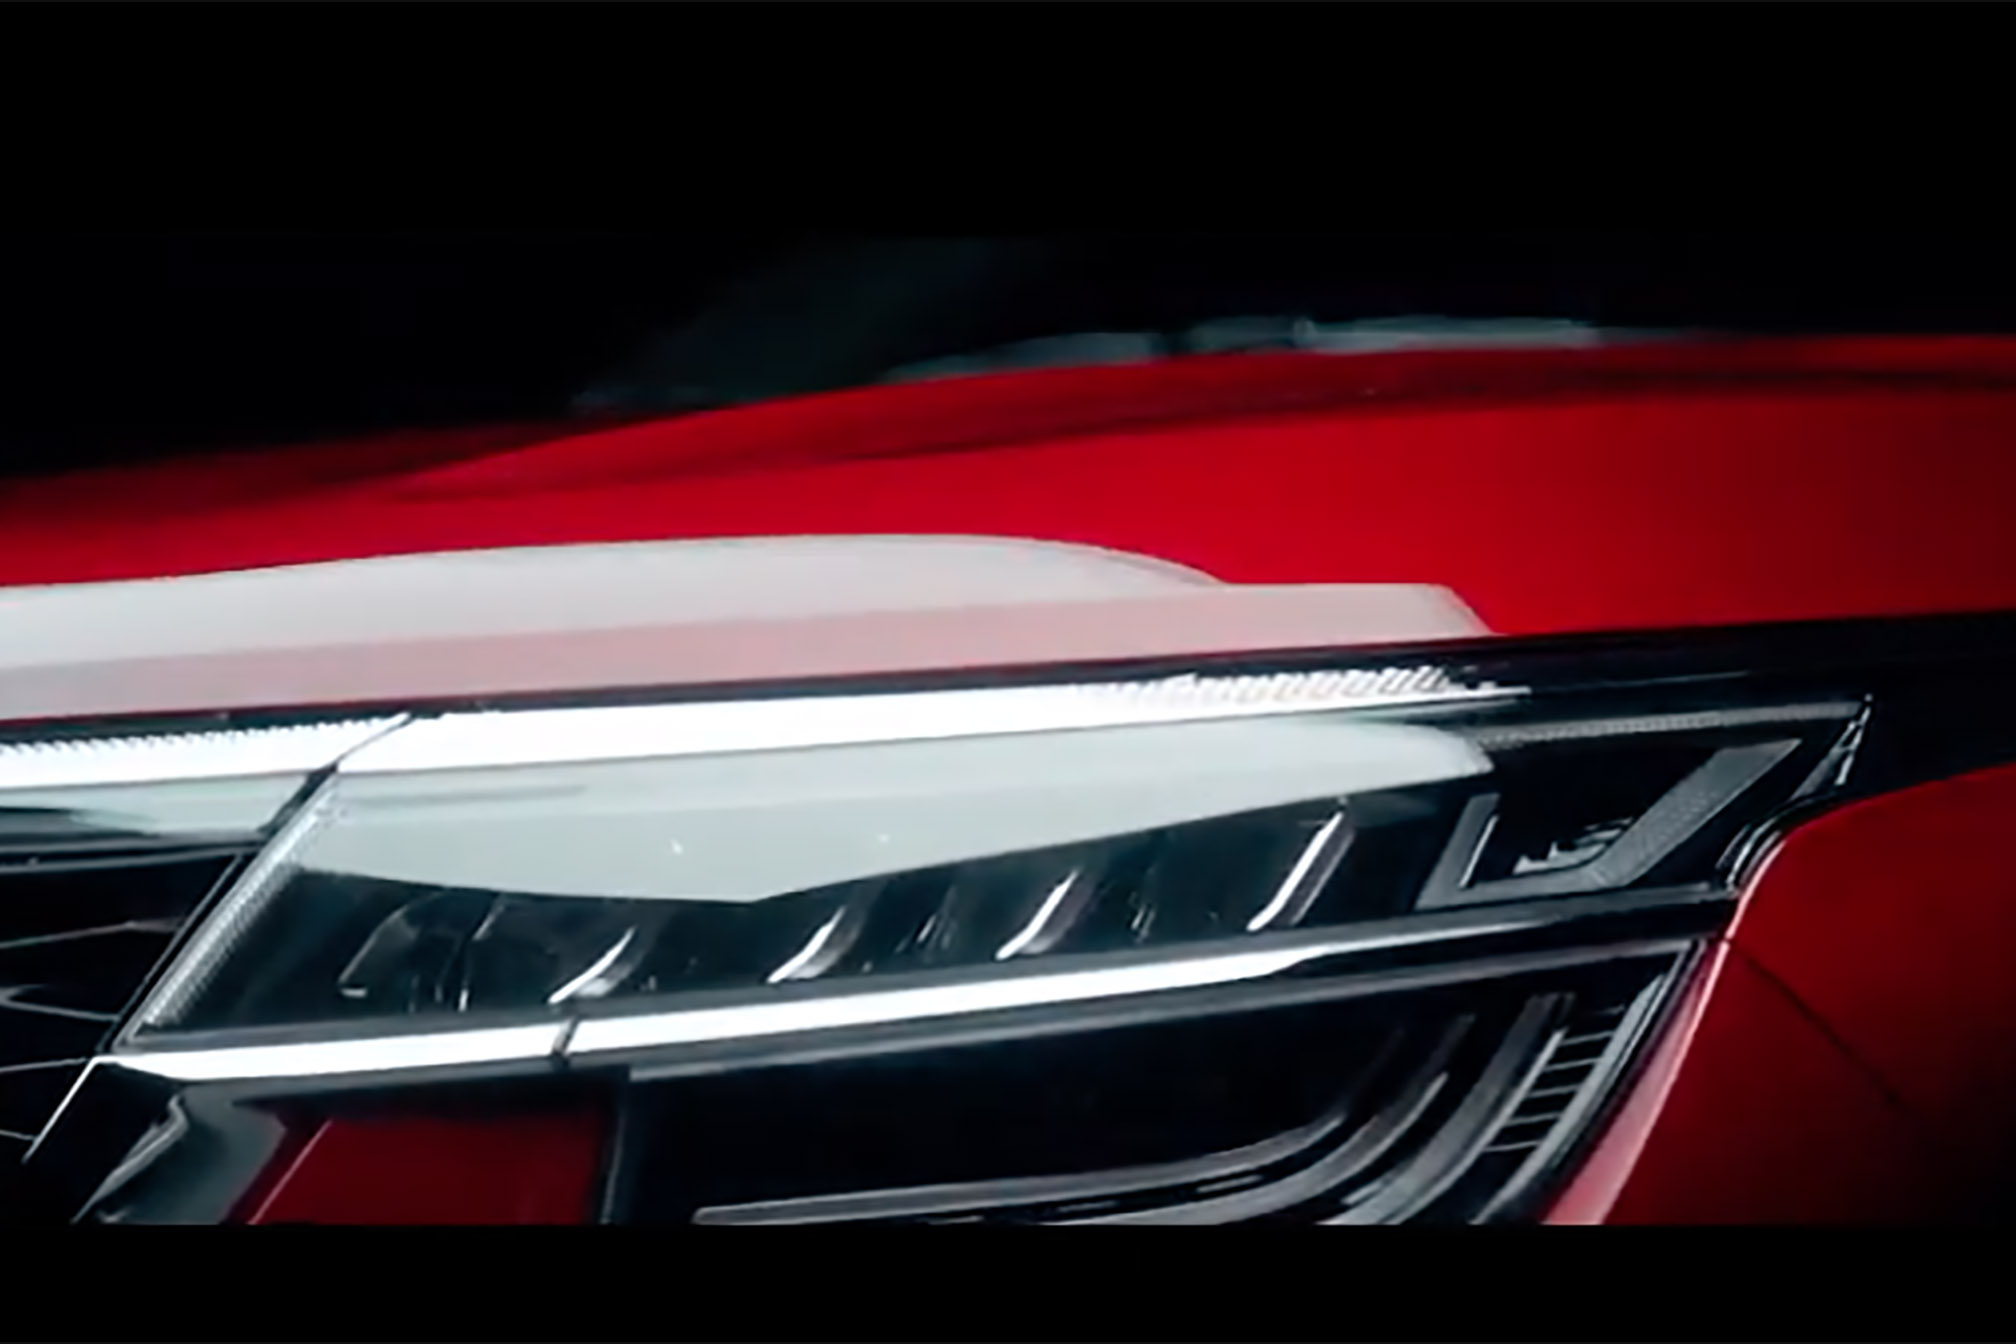 Kia Continues Seltos Strip Tease, Flashing More of All-New Small SUV